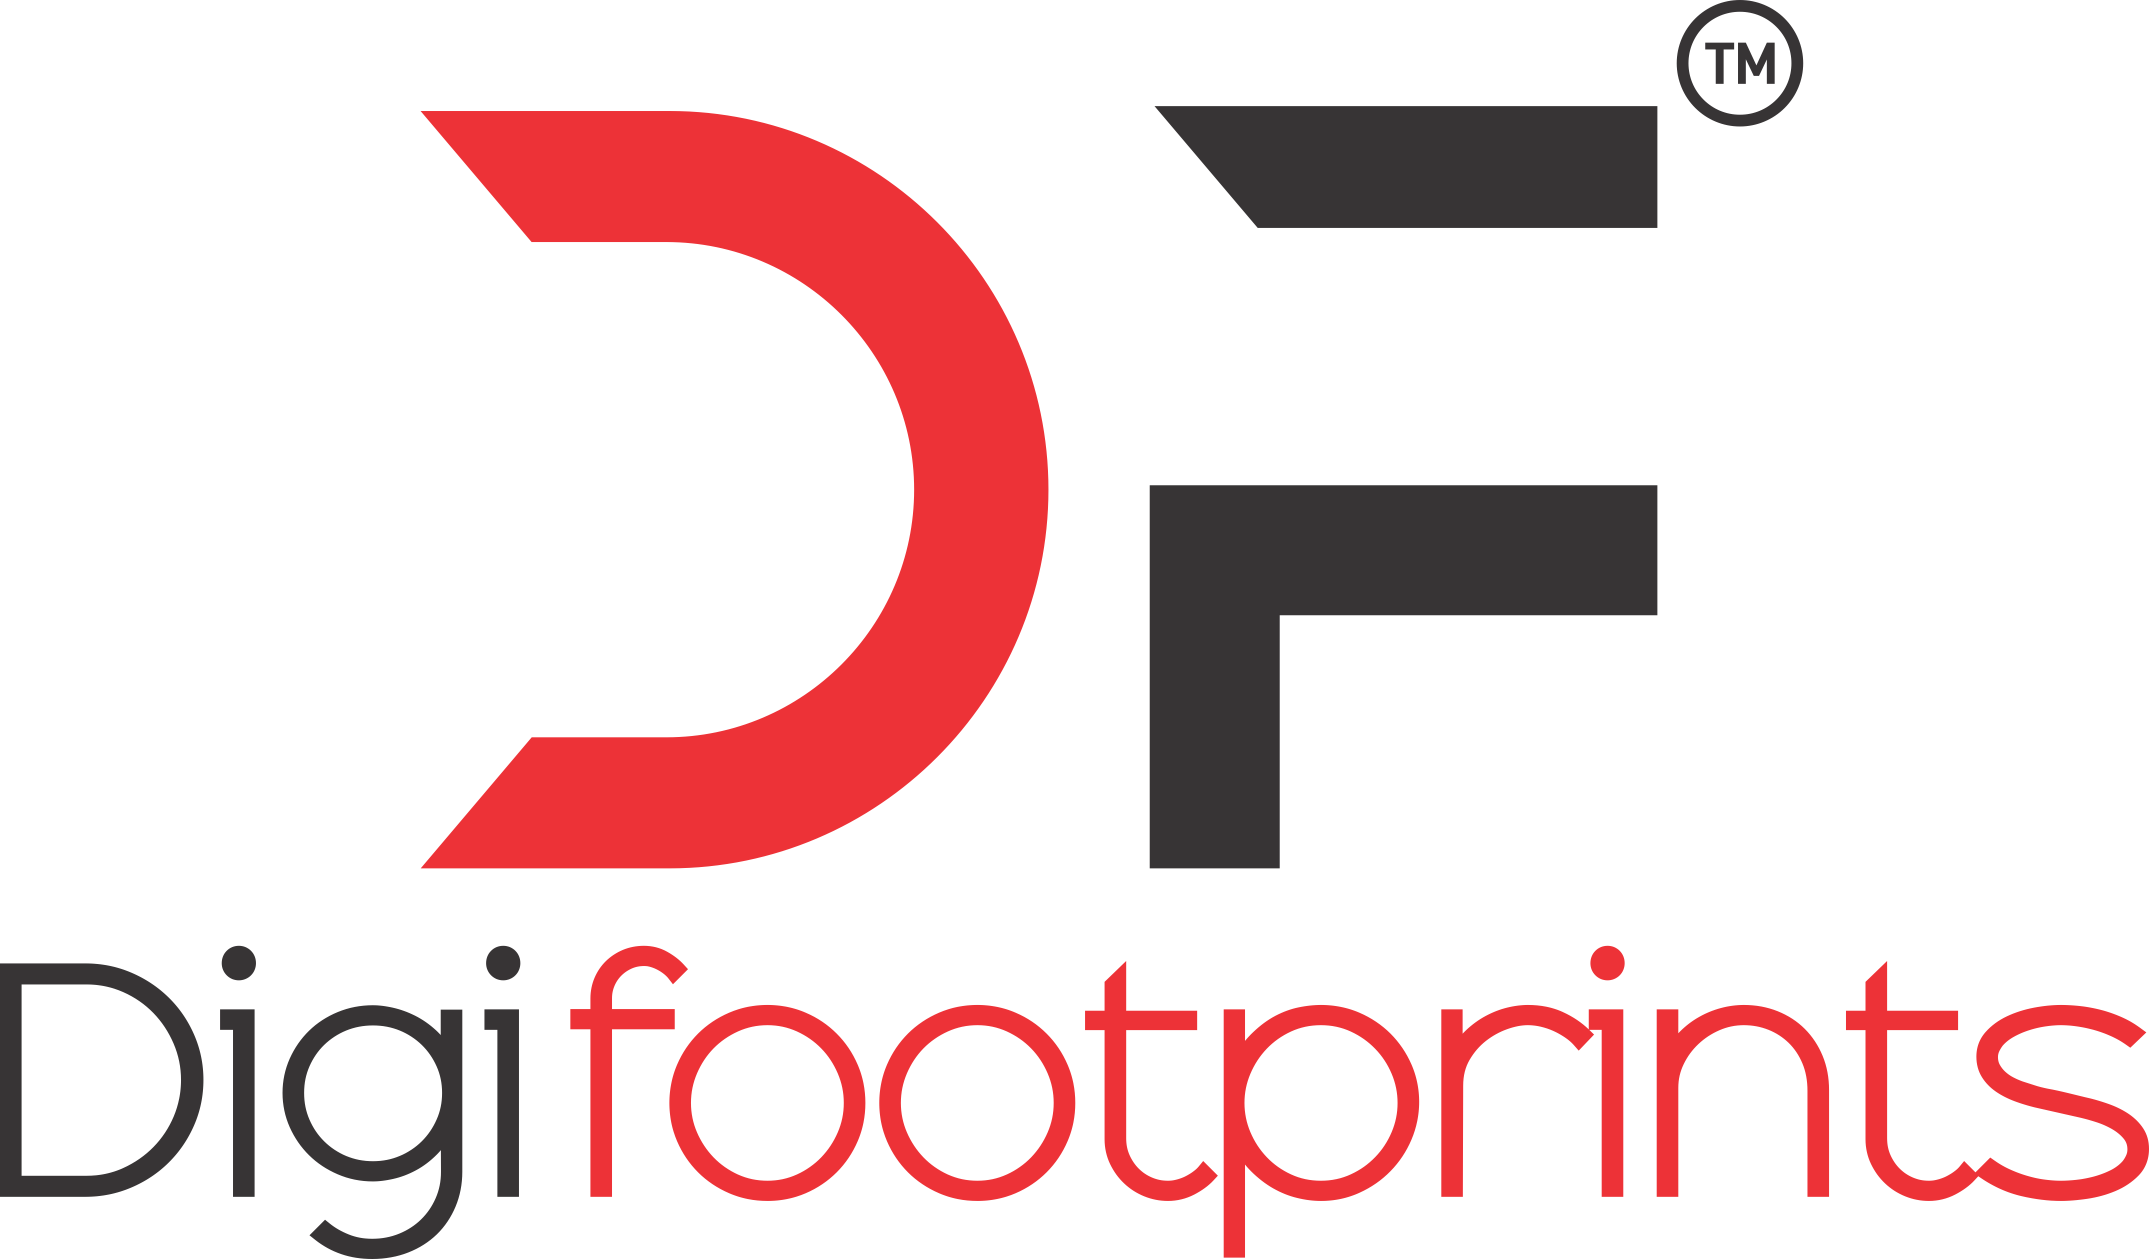 Digifootprints